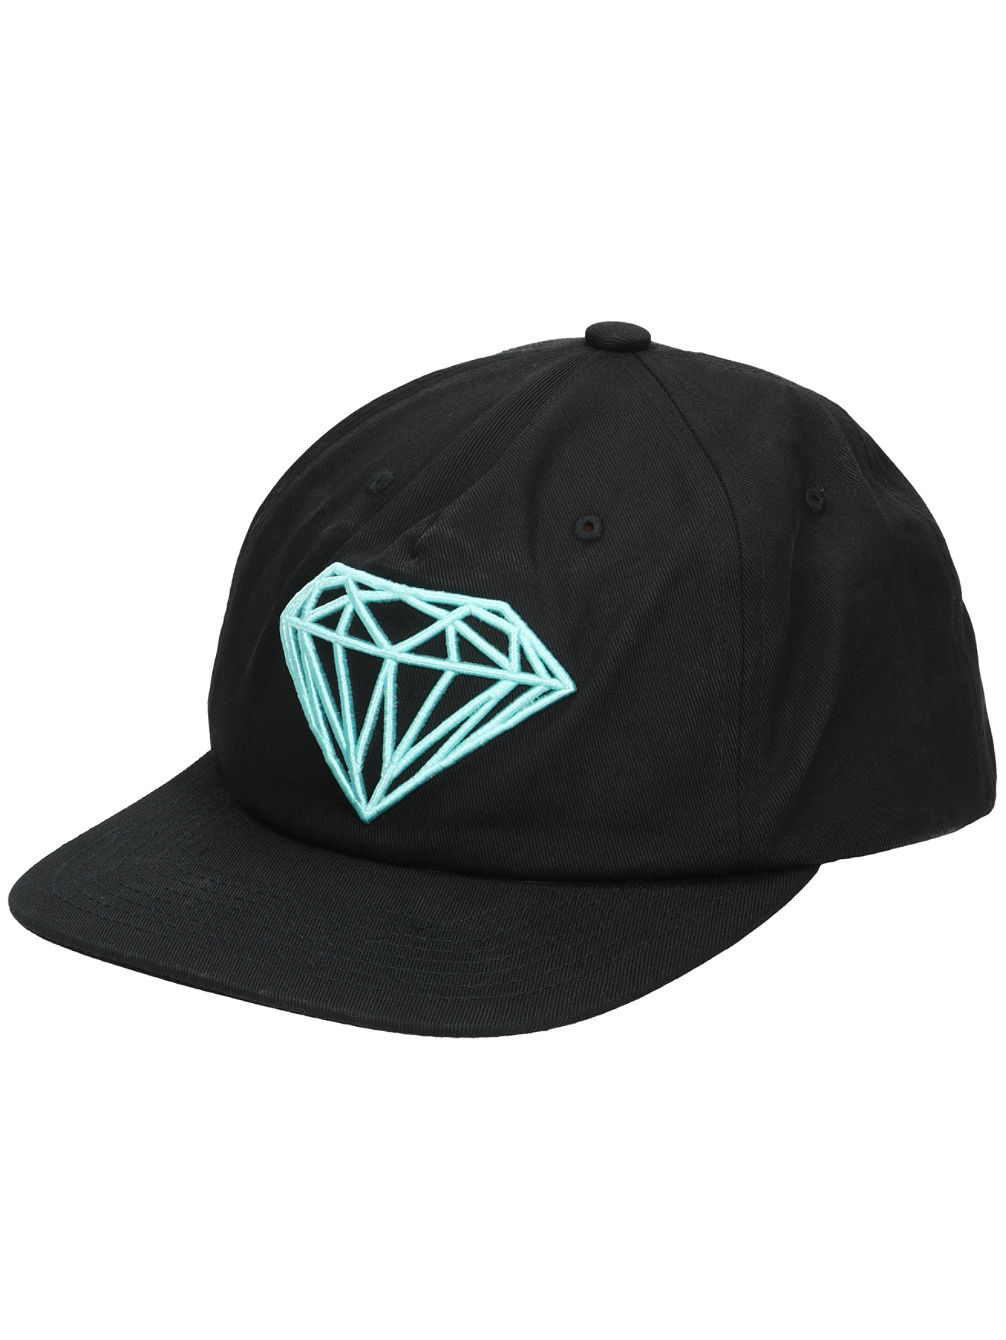 a7568f7c2a91eb Buy Diamond Brilliant Unconstructed Snapback Cap online at Blue Tomato